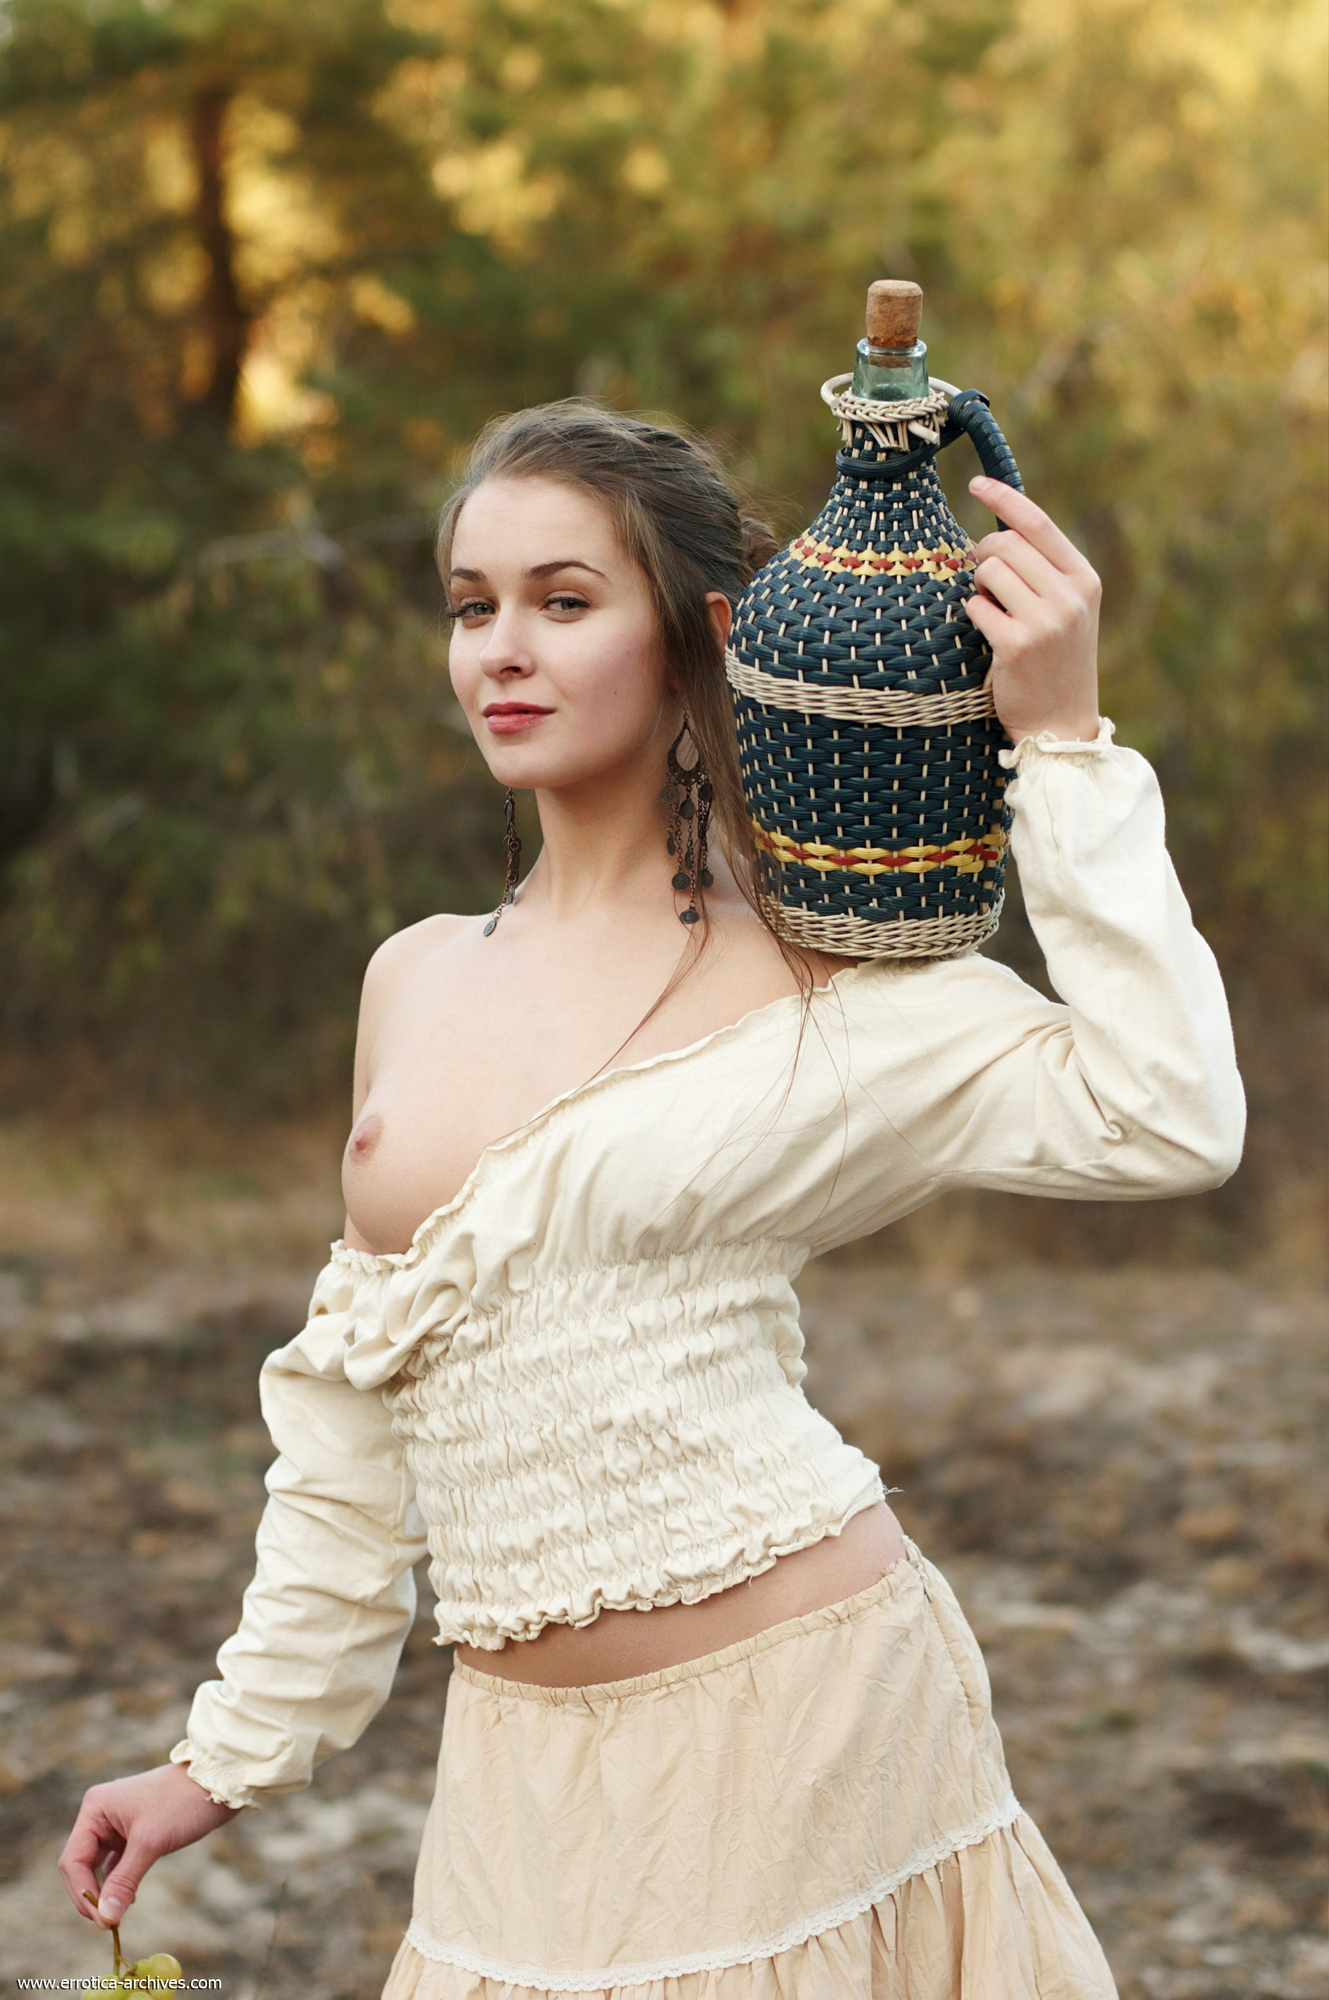 milana-naked-jug-wine-grapes-outdoor-errotica-archives-03